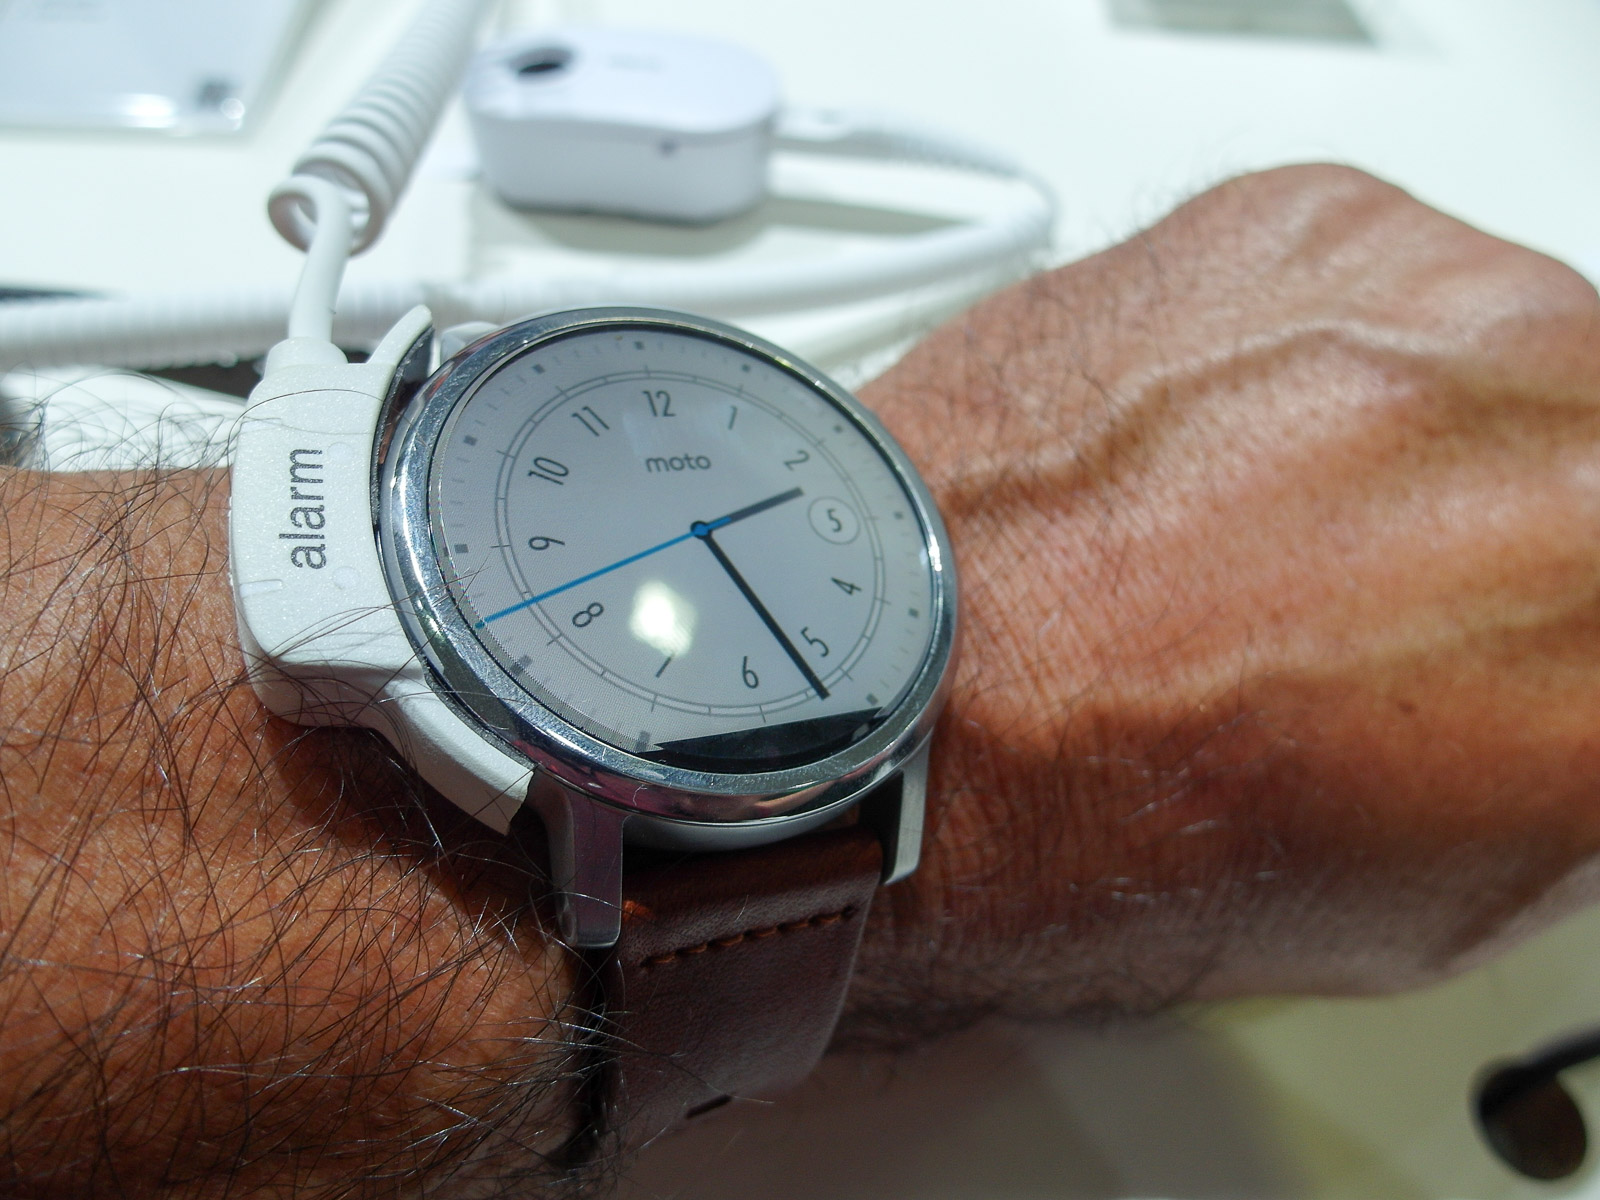 <h1>New Moto 360 Smartwatch</h1> <h2>IFA 2015 SmartHomeConsult Report</h2>